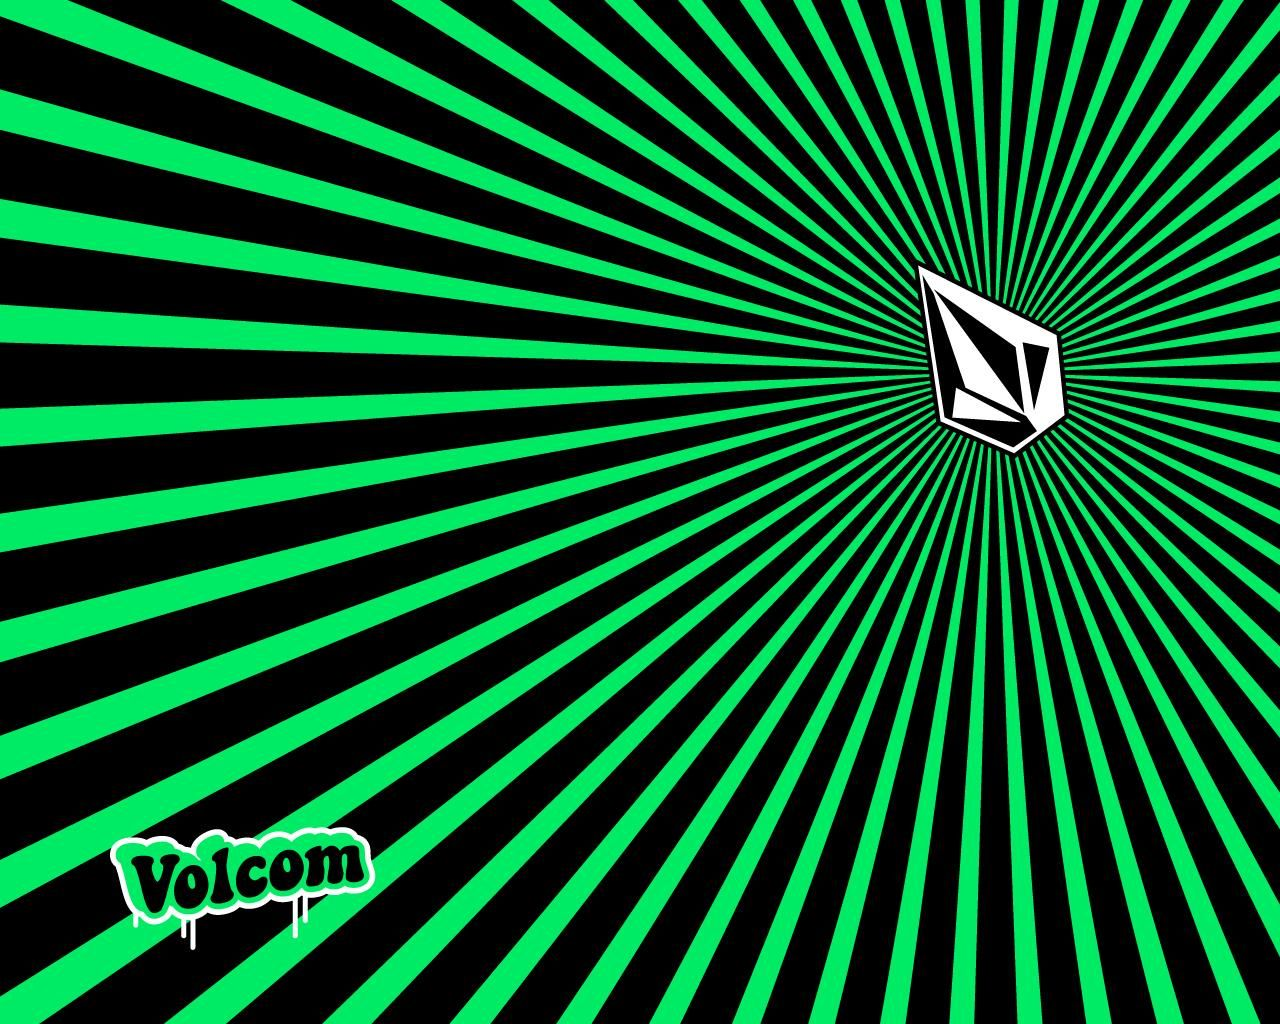 1280x1024 - Volcom Backgrounds 24